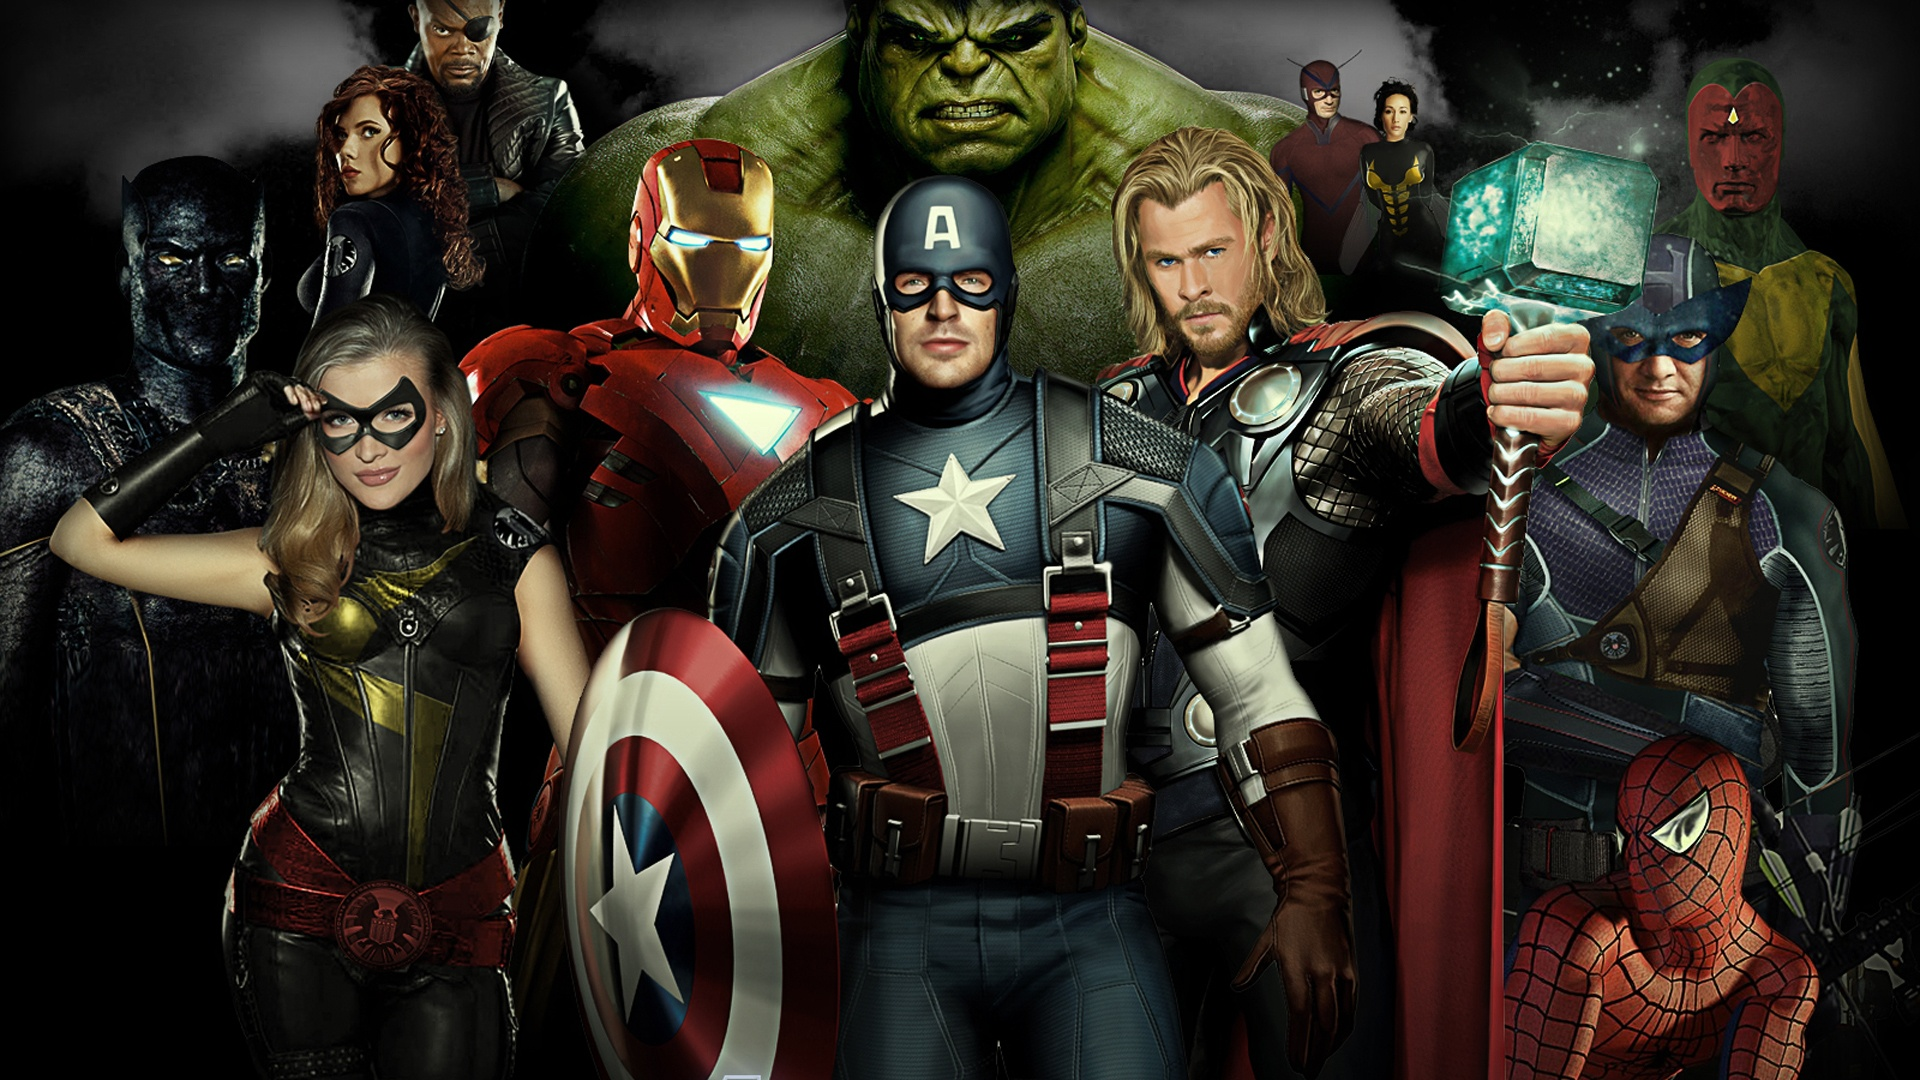 wallpaper the avengers 2012 movie hd 1920x1440 hd picture, image